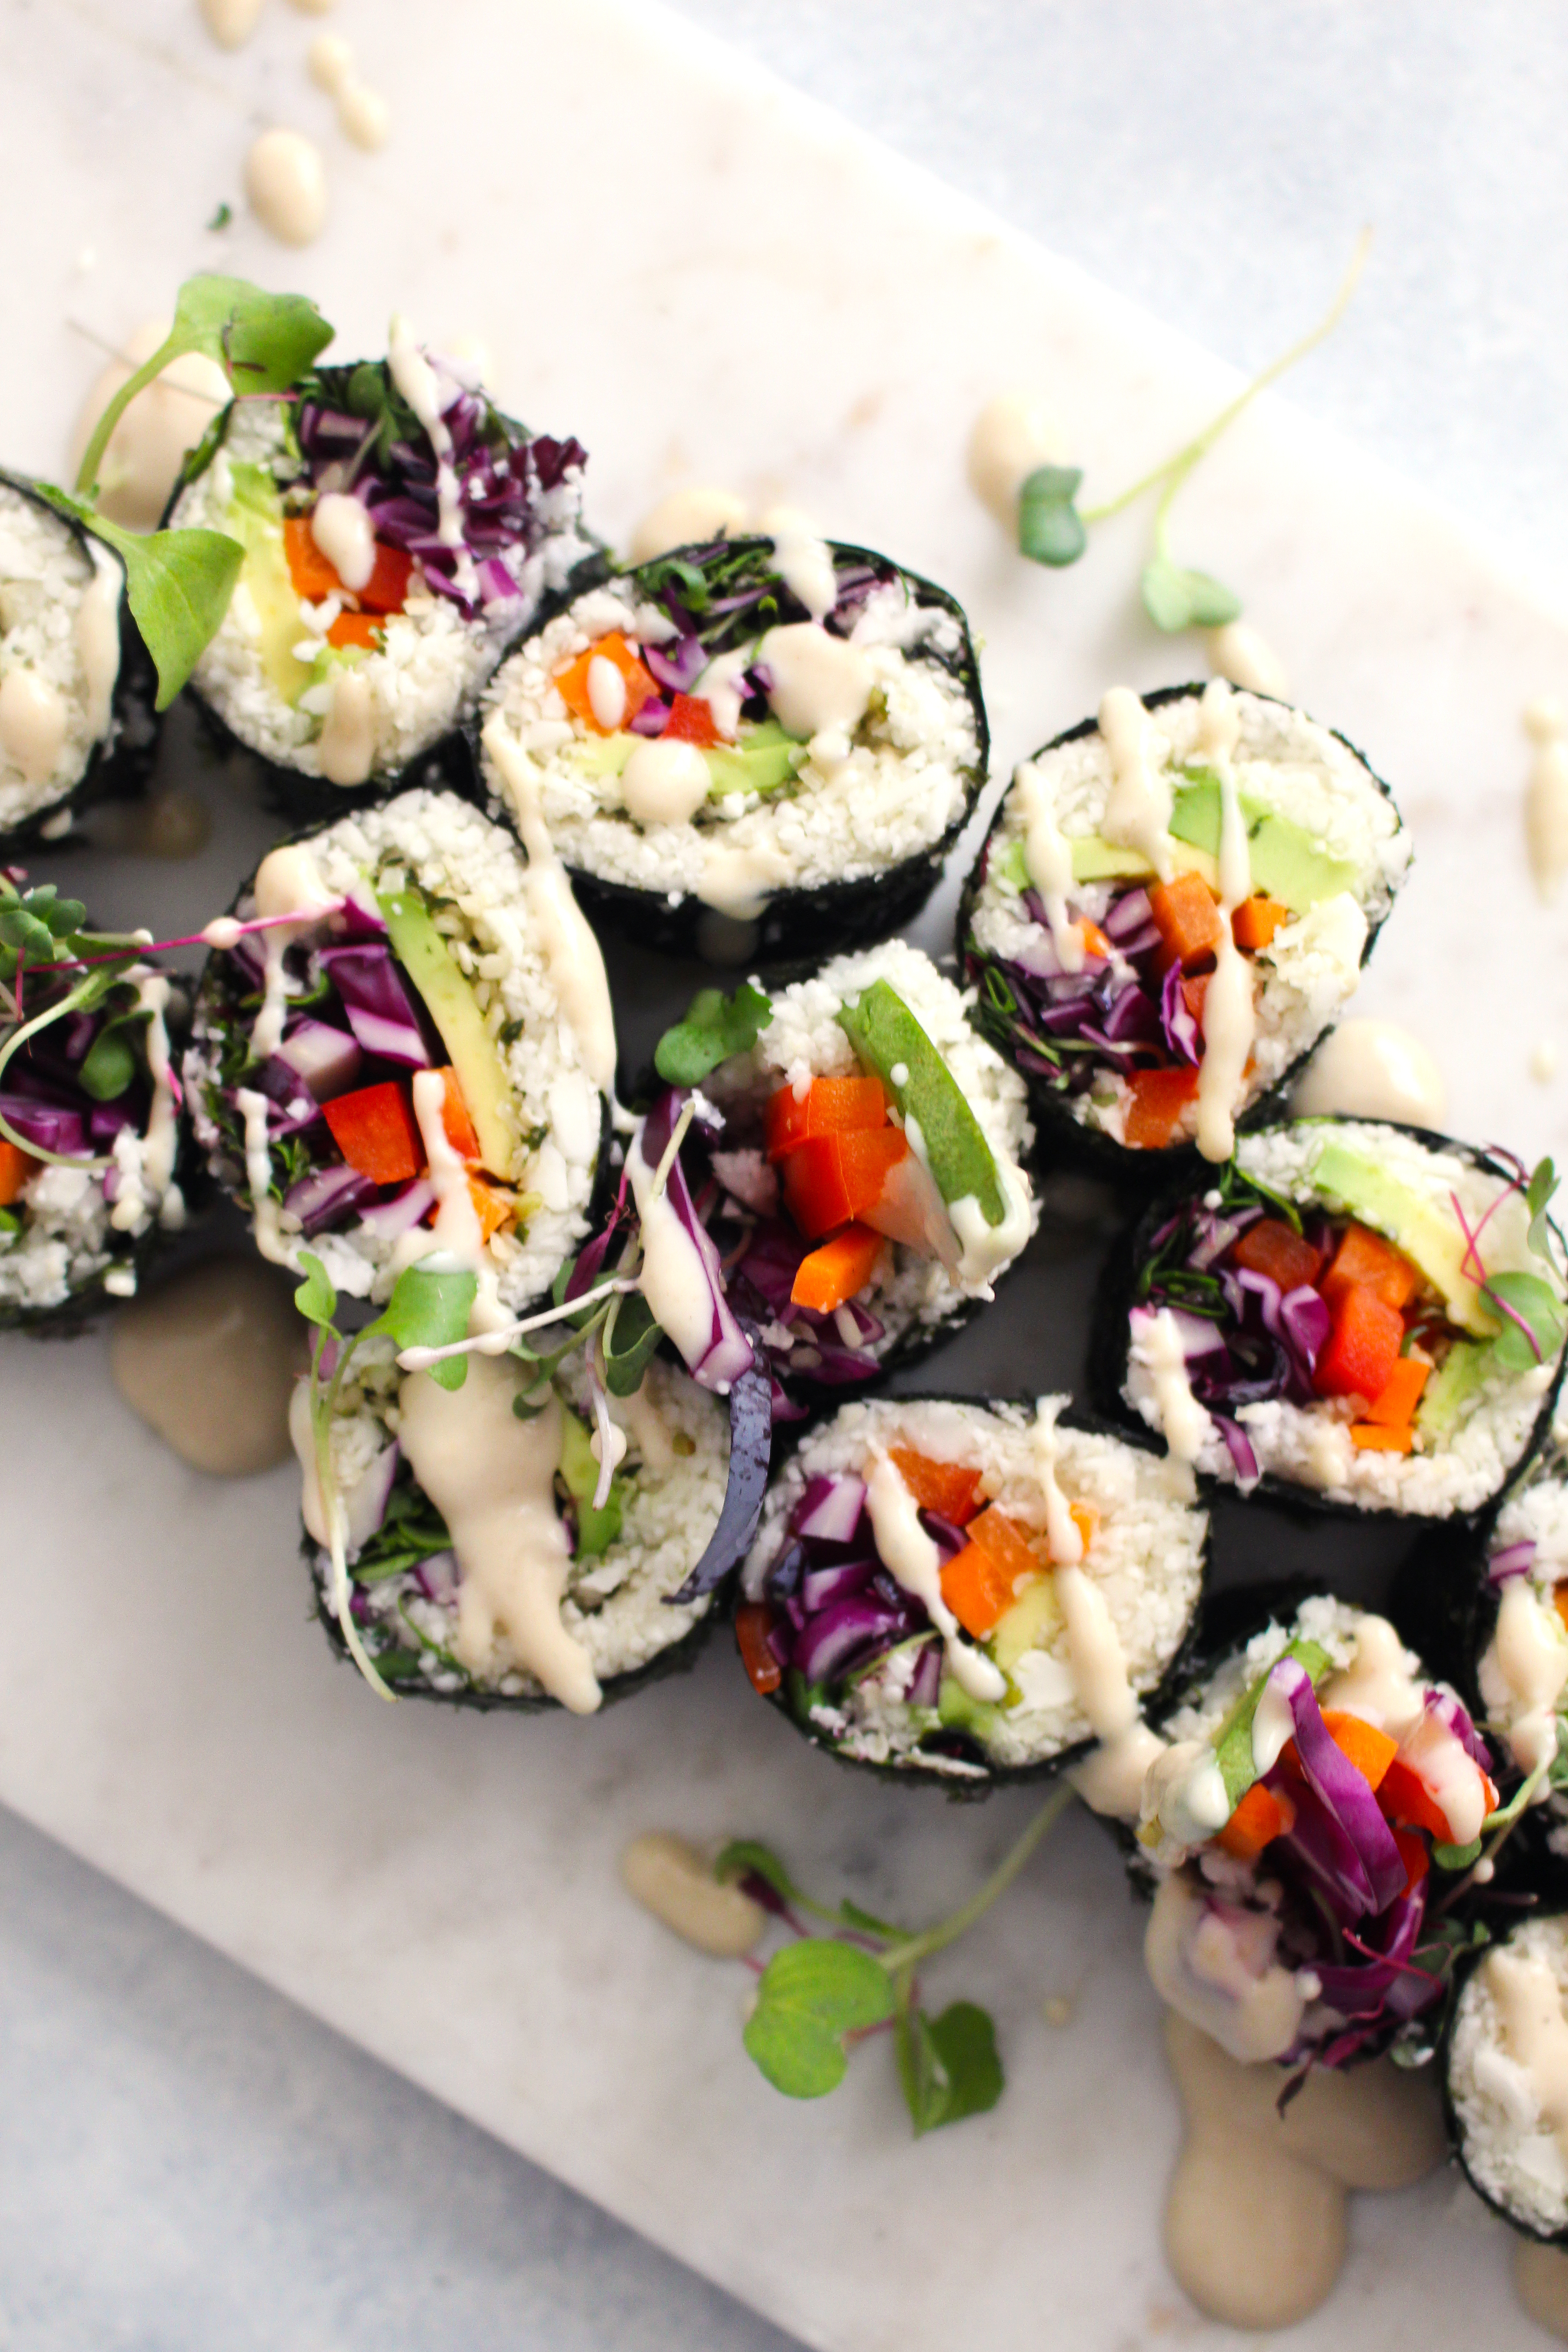 How to make your own homemade vegan sushi rolls + GLOW raw vegan sushi with a miso tahini sauce recipe | FitLiving Eats by Carly Paige